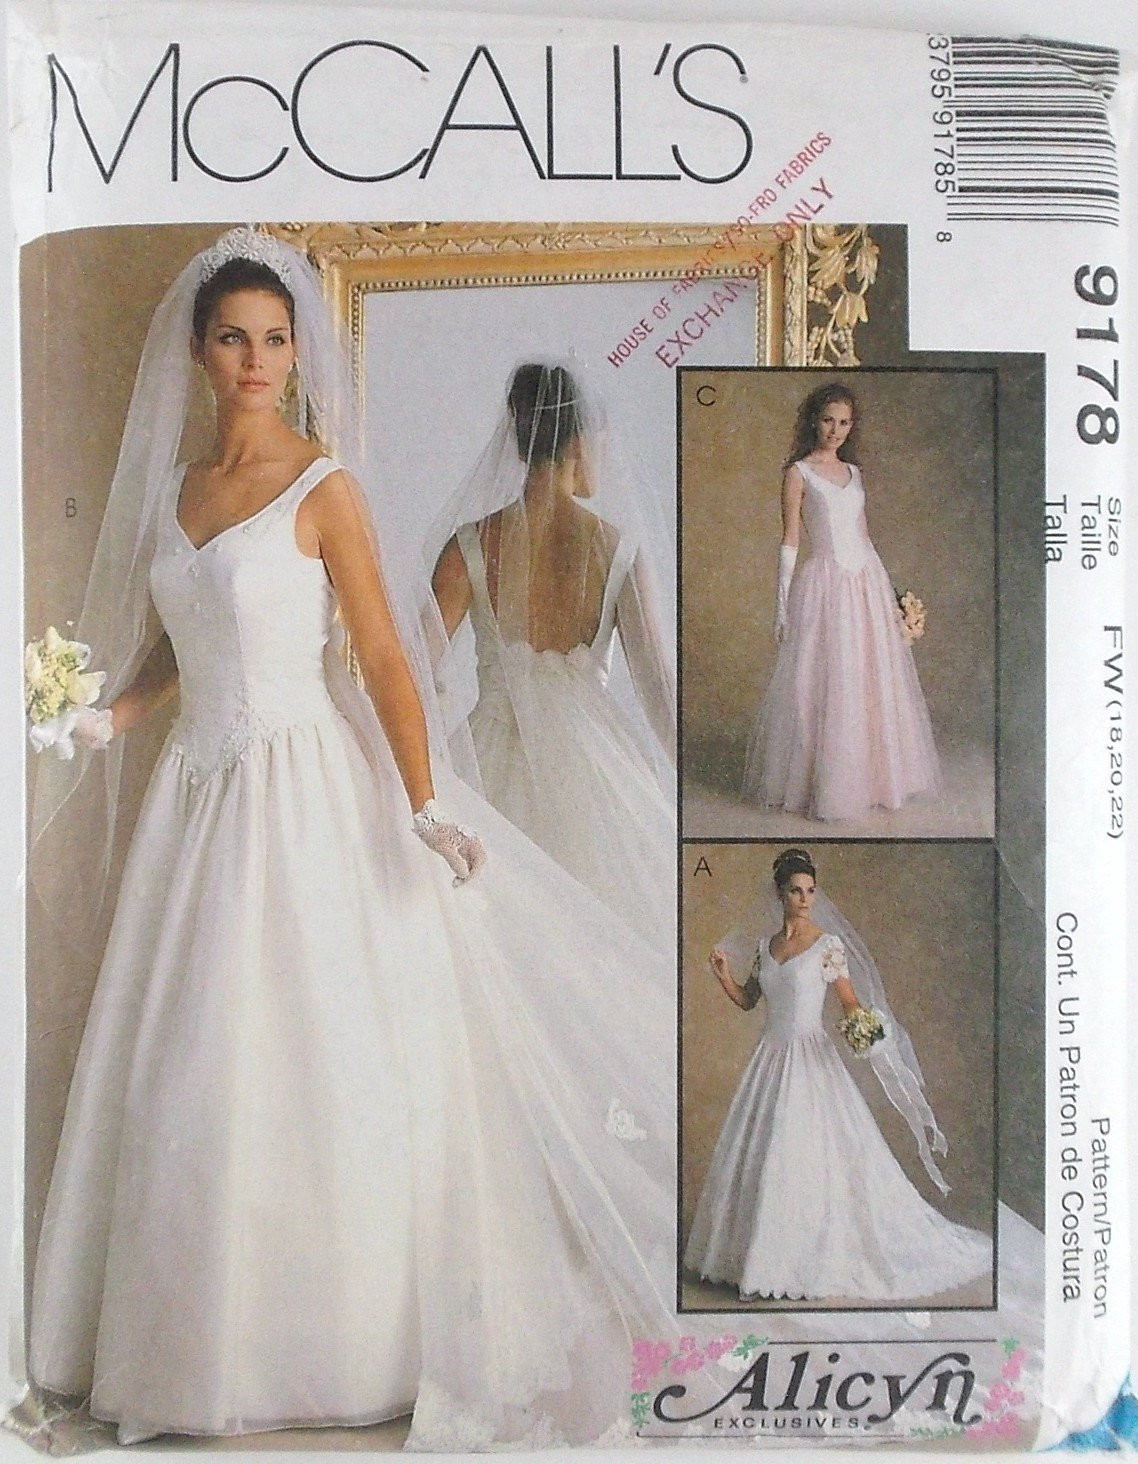 Wedding Dress Patterns Awesome Misses Bridal Gowns Dress Plus Sizes Mccalls Pattern 9178 Of Incredible 44 Images Wedding Dress Patterns